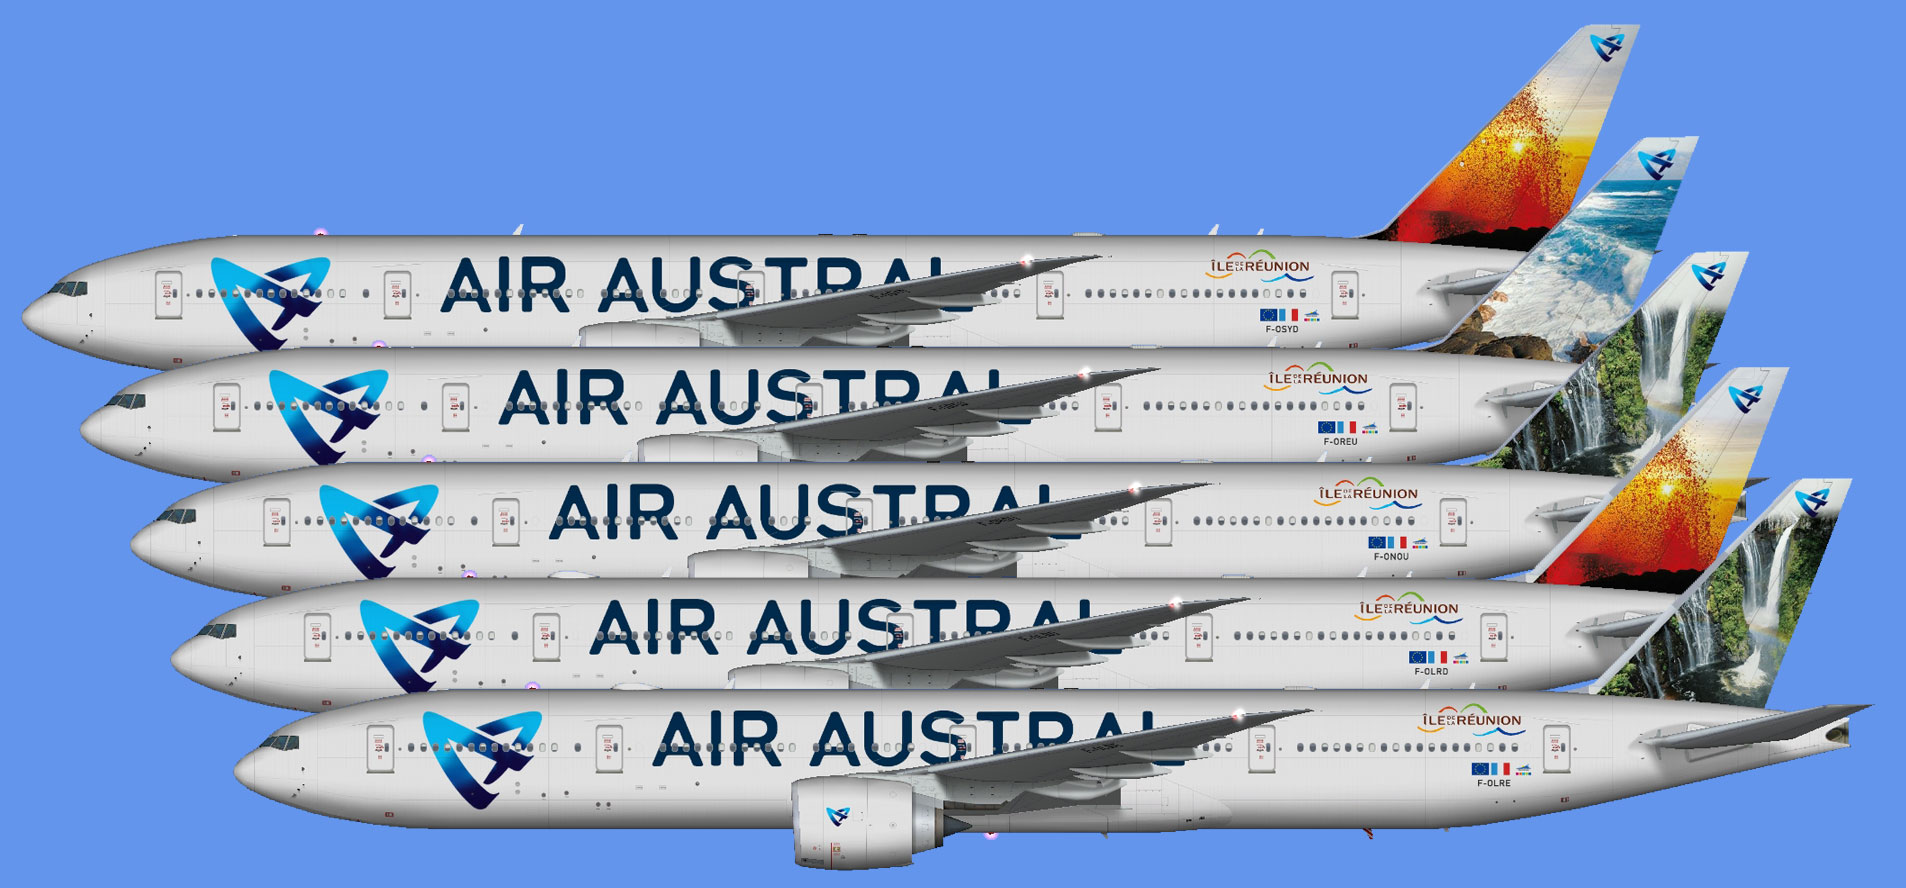 Air Austral - The Flying Carpet Hub